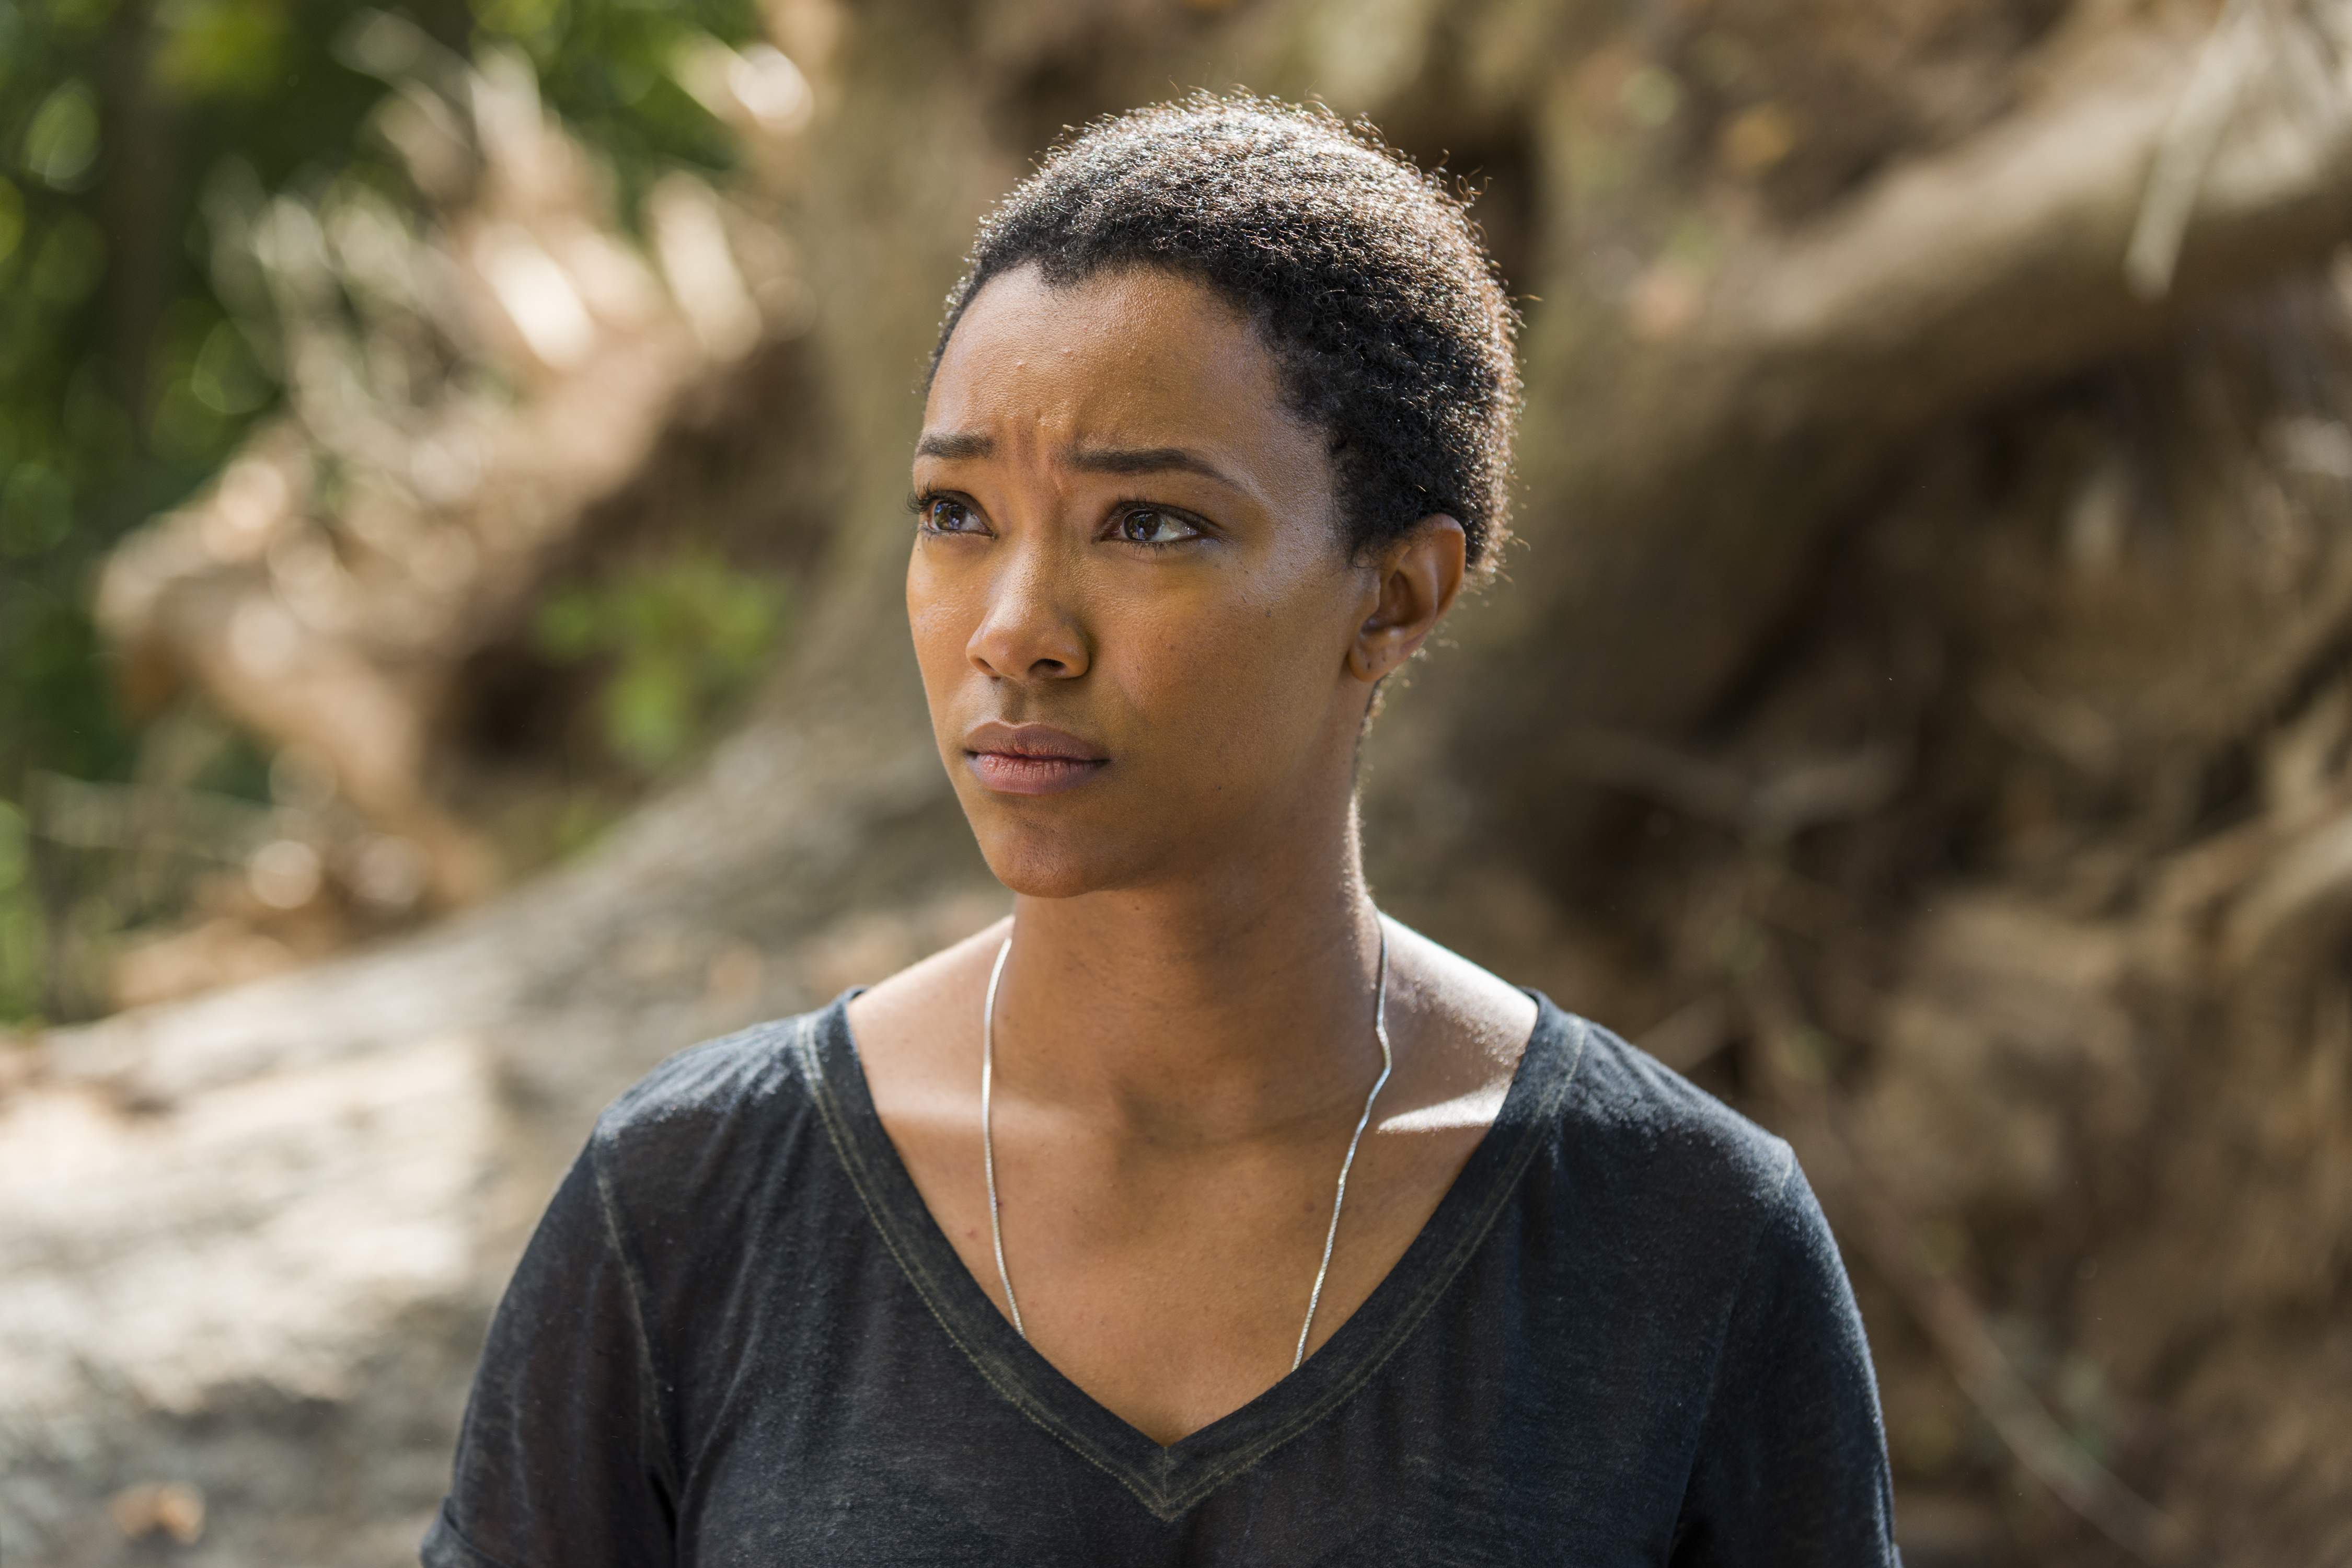 Sasha Williams (Sonequa Martin-Green) - The Walking Dead Saison 7 Épisode 14 - Photo: Gene Page/AMC